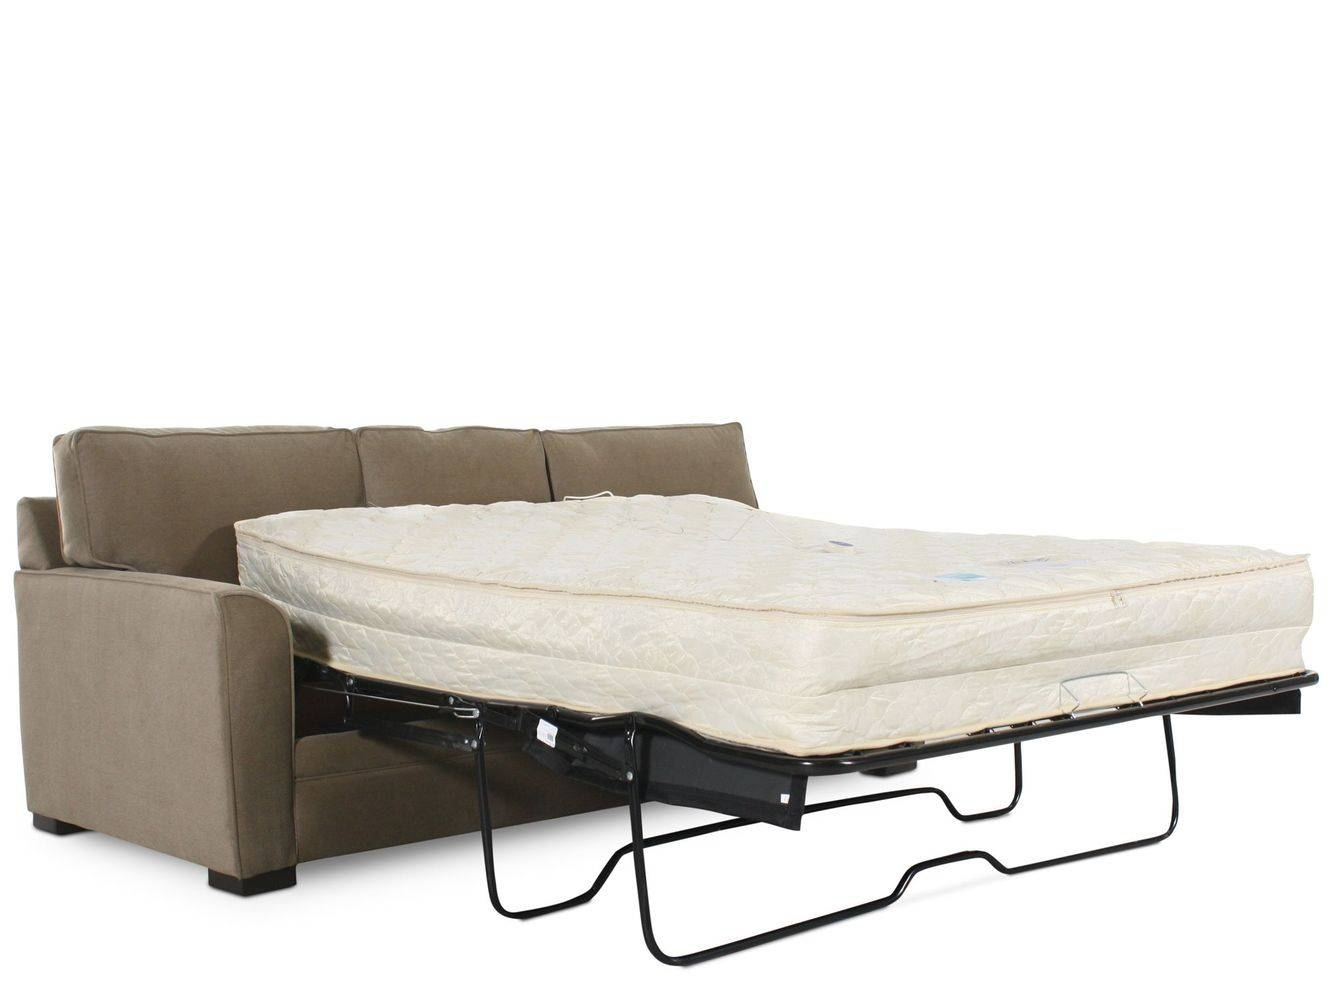 Sleeper Sofas With Air Mattress - Ansugallery within Sofas Mattress (Image 8 of 15)